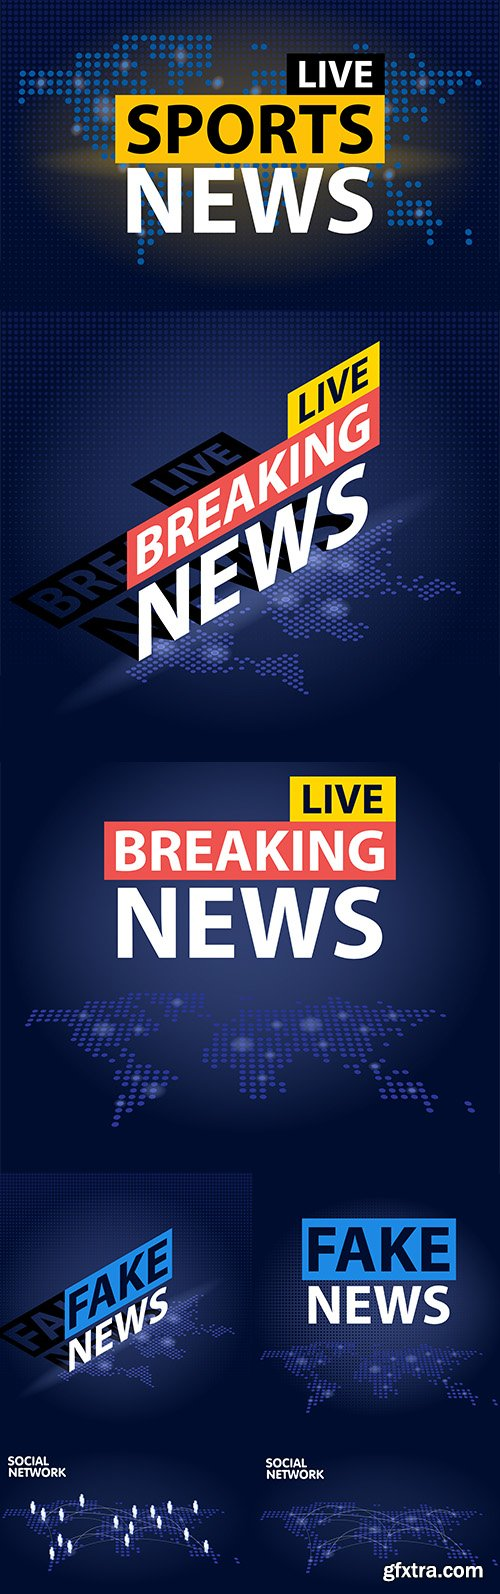 Live Breaking News and World Map Background